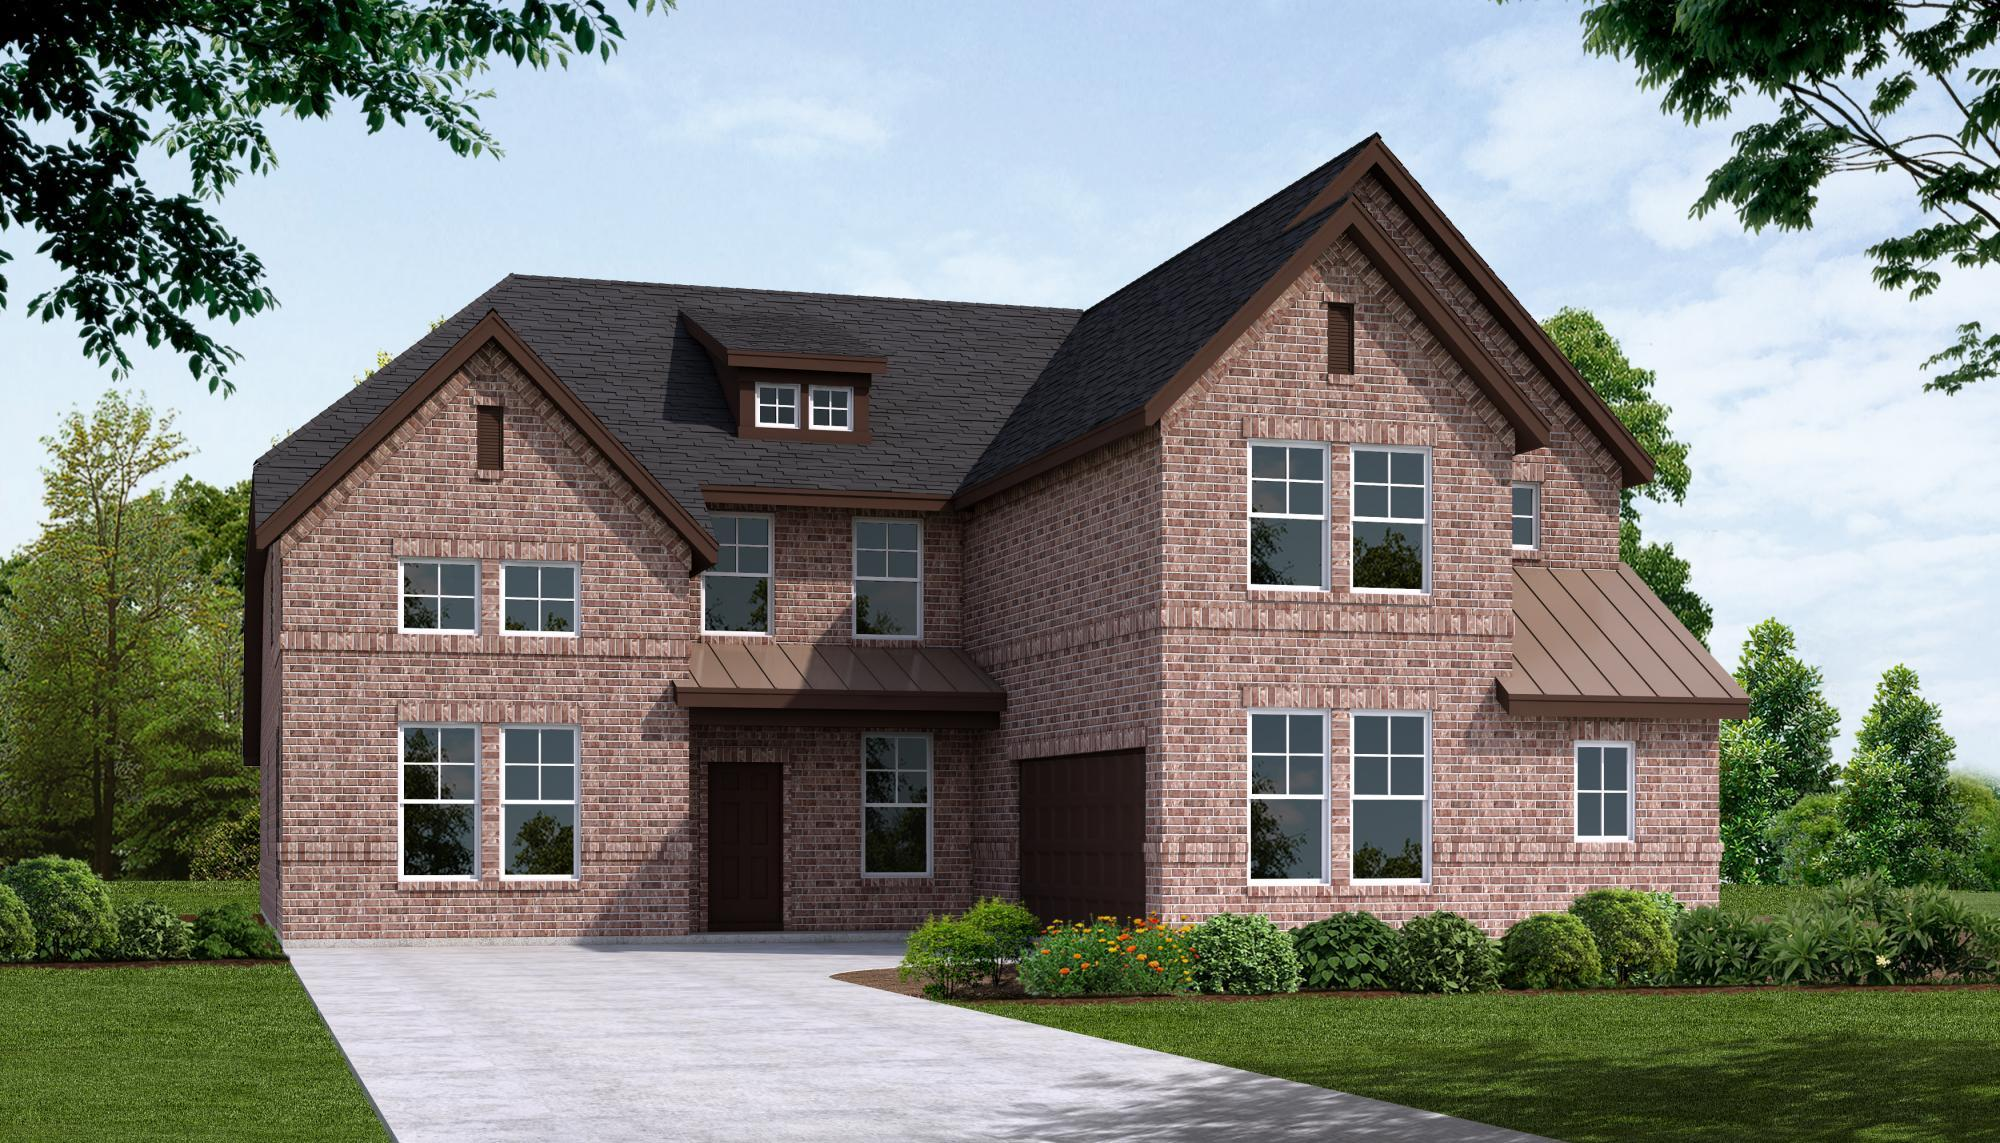 Single Family for Sale at Thomas Crossing - 3354 12408 Angel Vine Dr. Burleson, Texas 76028 United States